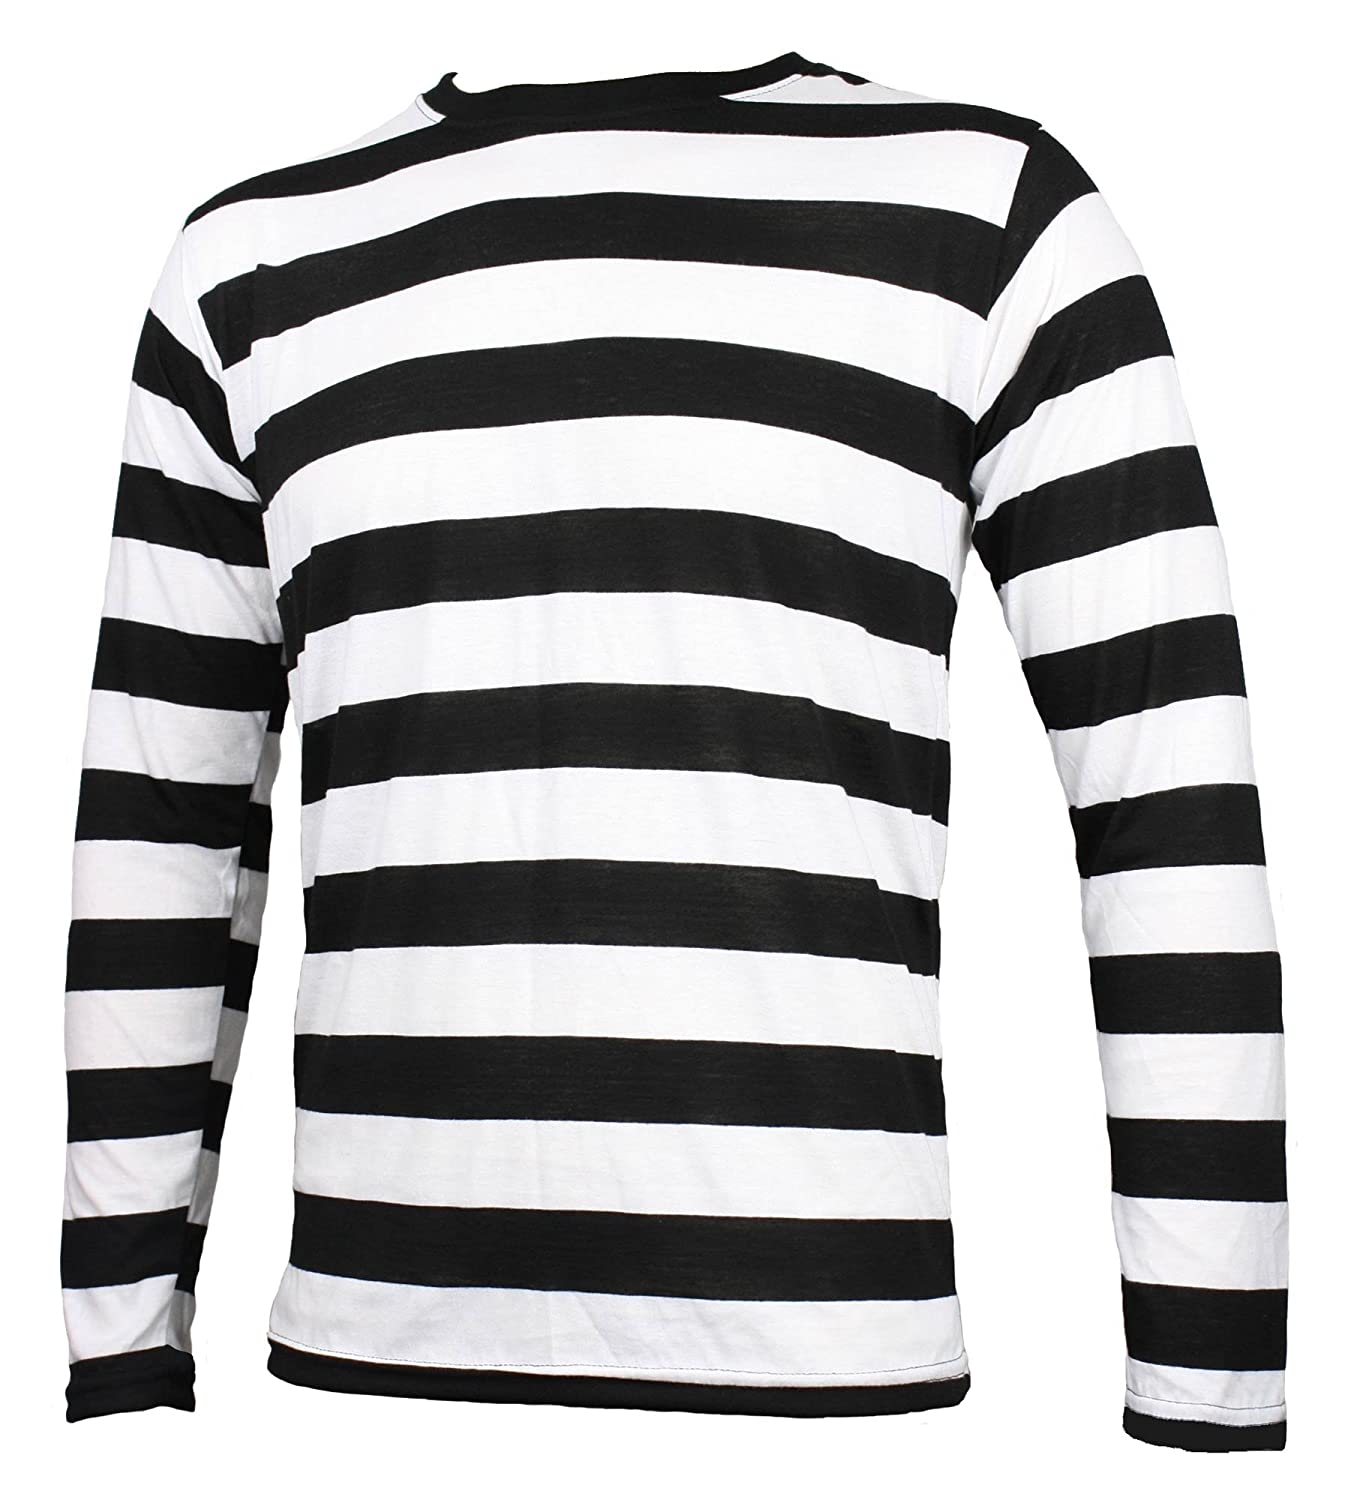 Striped shirts are a great way to add another dimension to your wardrobe. Vertical stripes add the illusion of length so you will look taller in these types of shirts. Horizontal stripes do the opposite of this so they are a good choice for those with a smaller frame or someone looking to emphasize their chest.